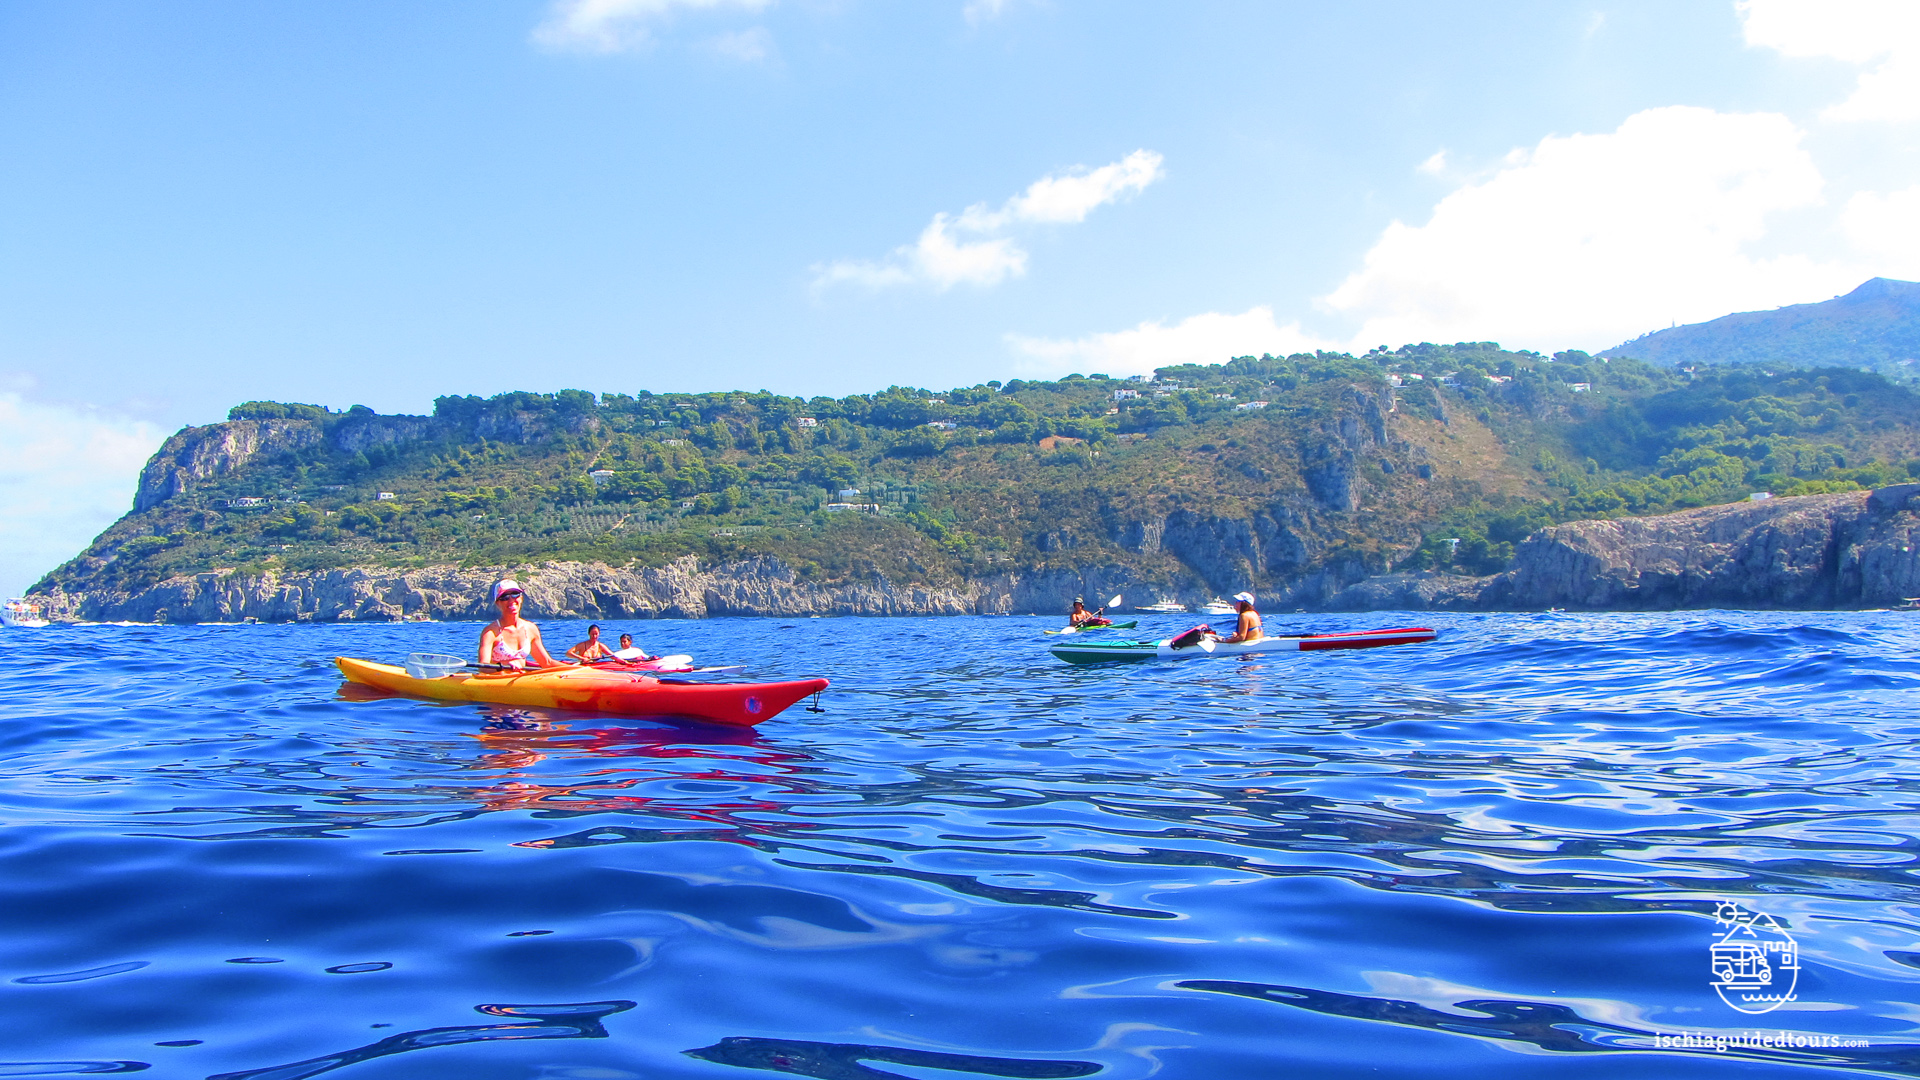 Kayaking in Procida, Procida kayak, outdoor sports in Procida, outdoor sport in Ischia, Procida activities, Procida tour, Procida beaches, watersports in Procida, watersports in Ischia, sea activities in Procida, sea sporta in Ischia, canoe tour in Procida, kayak tour in Procida, outdoor activities in Ischia, fun activities in Procida, Ischia tours, Procida tours